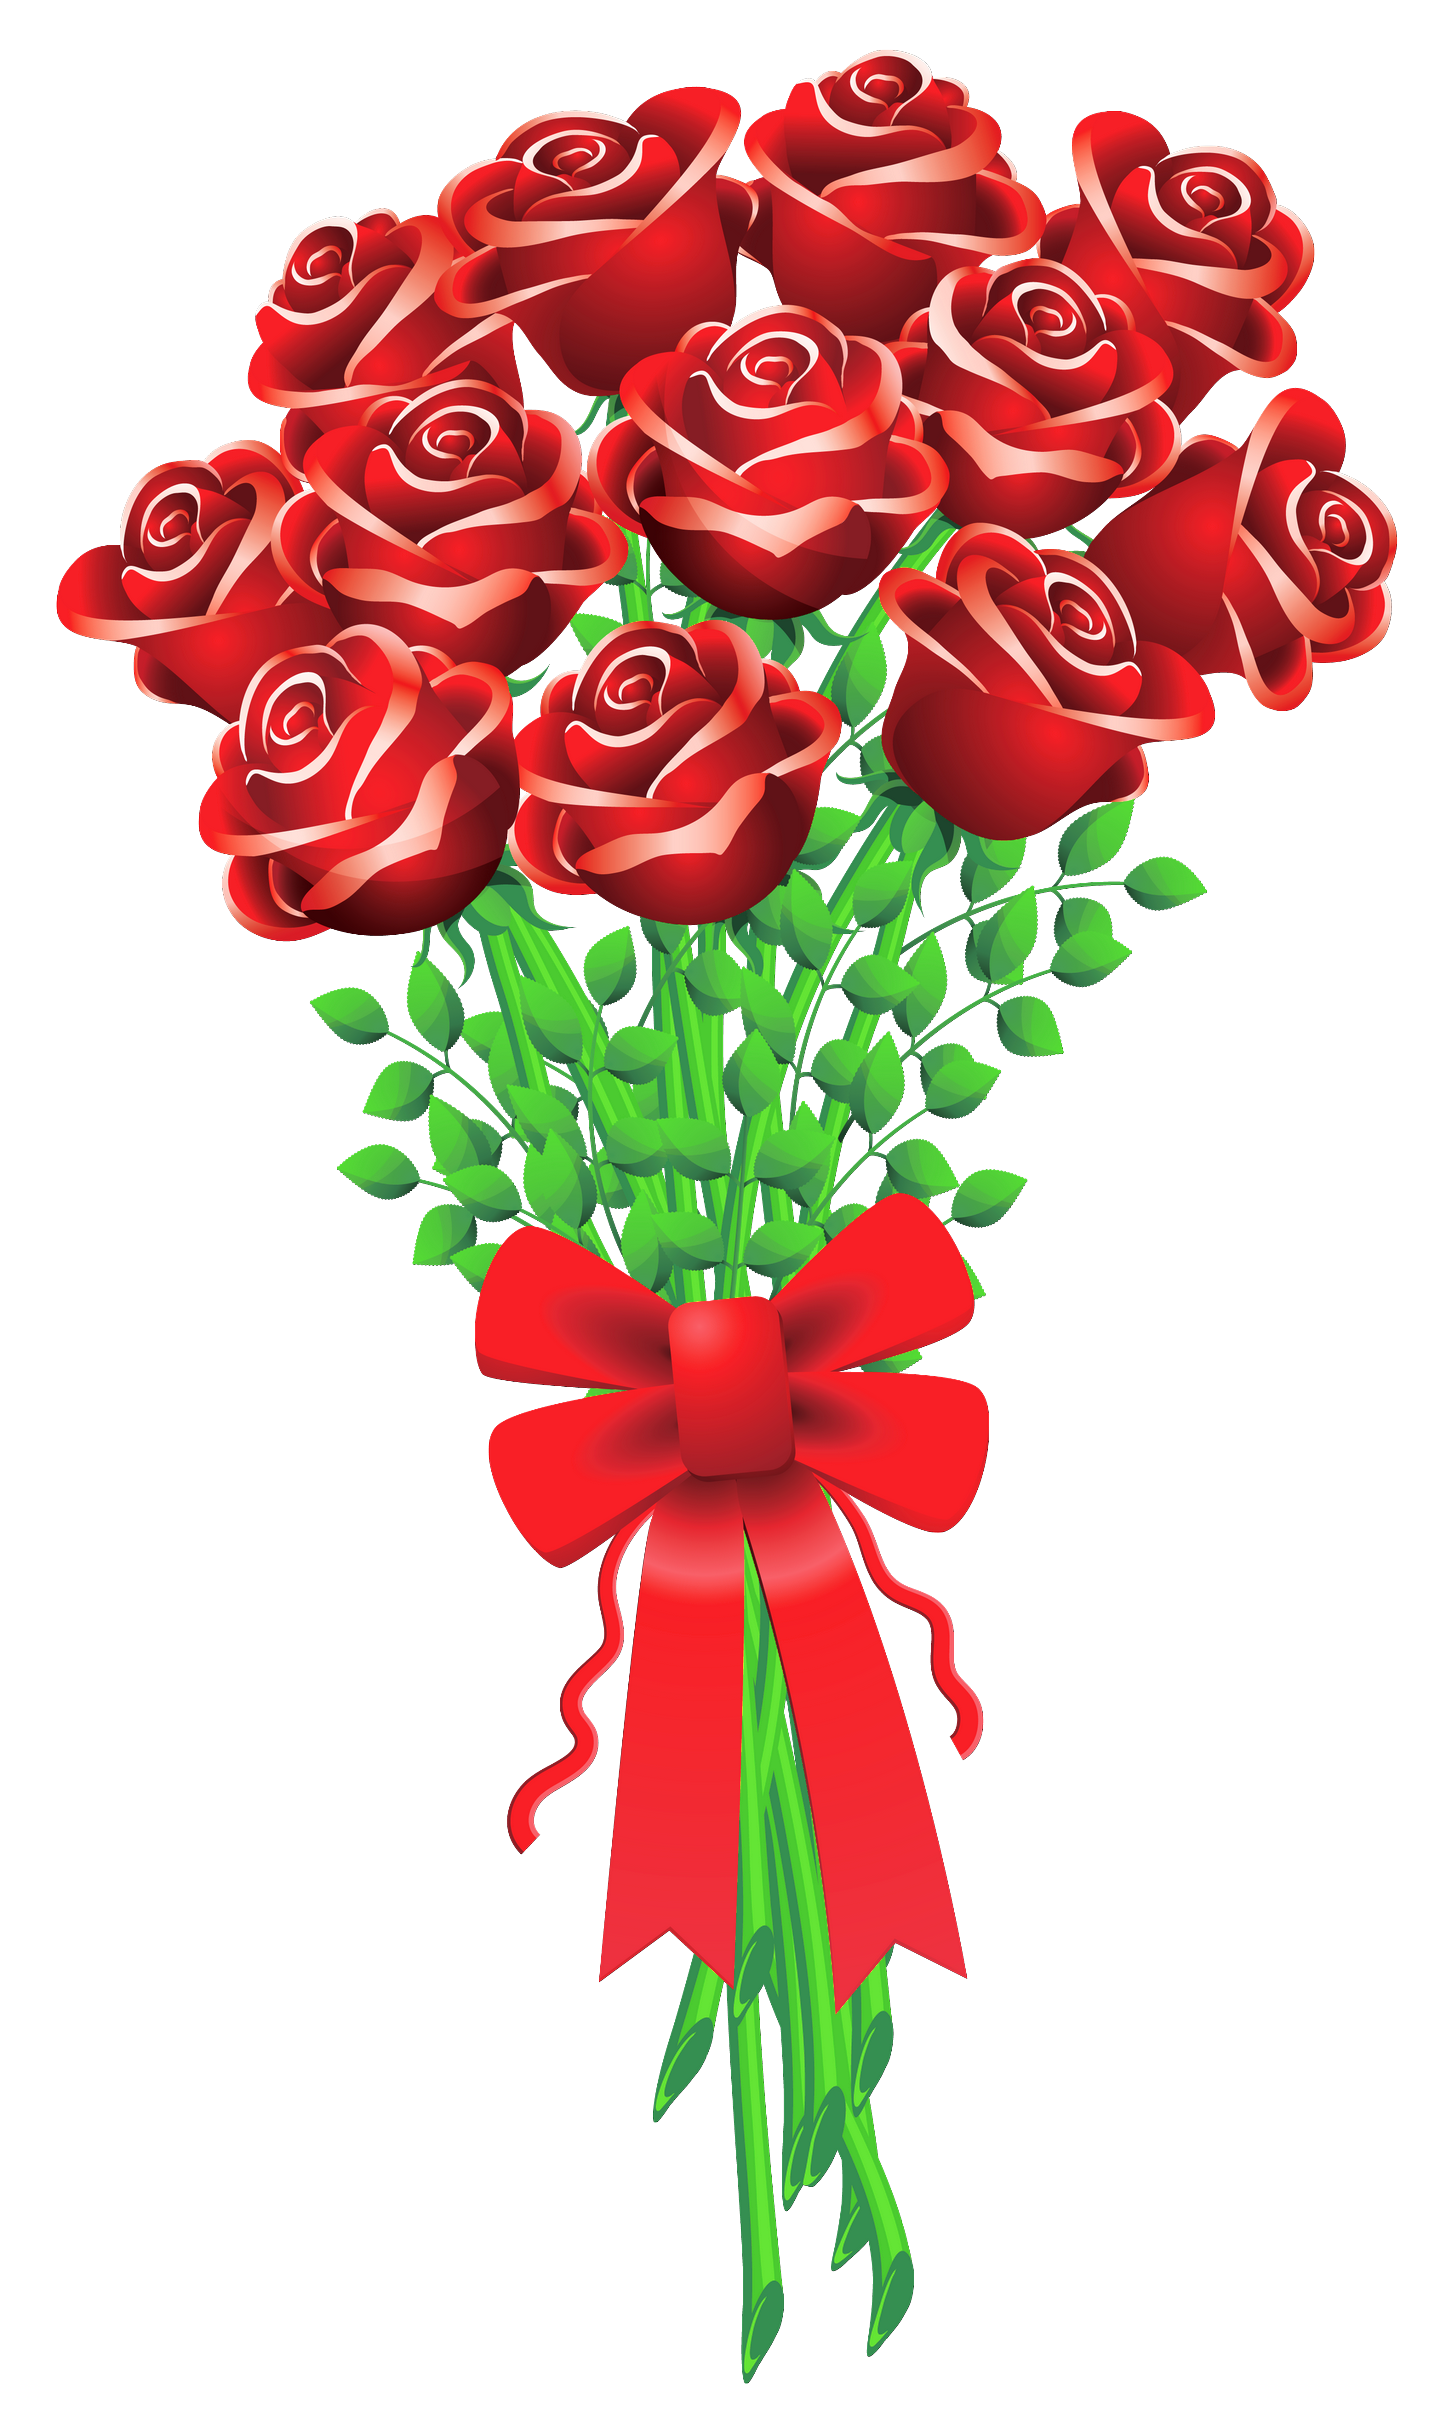 Boque clipart png Roses rose bouquet cartoon clipart clipart kid | virágok | Flower ... png